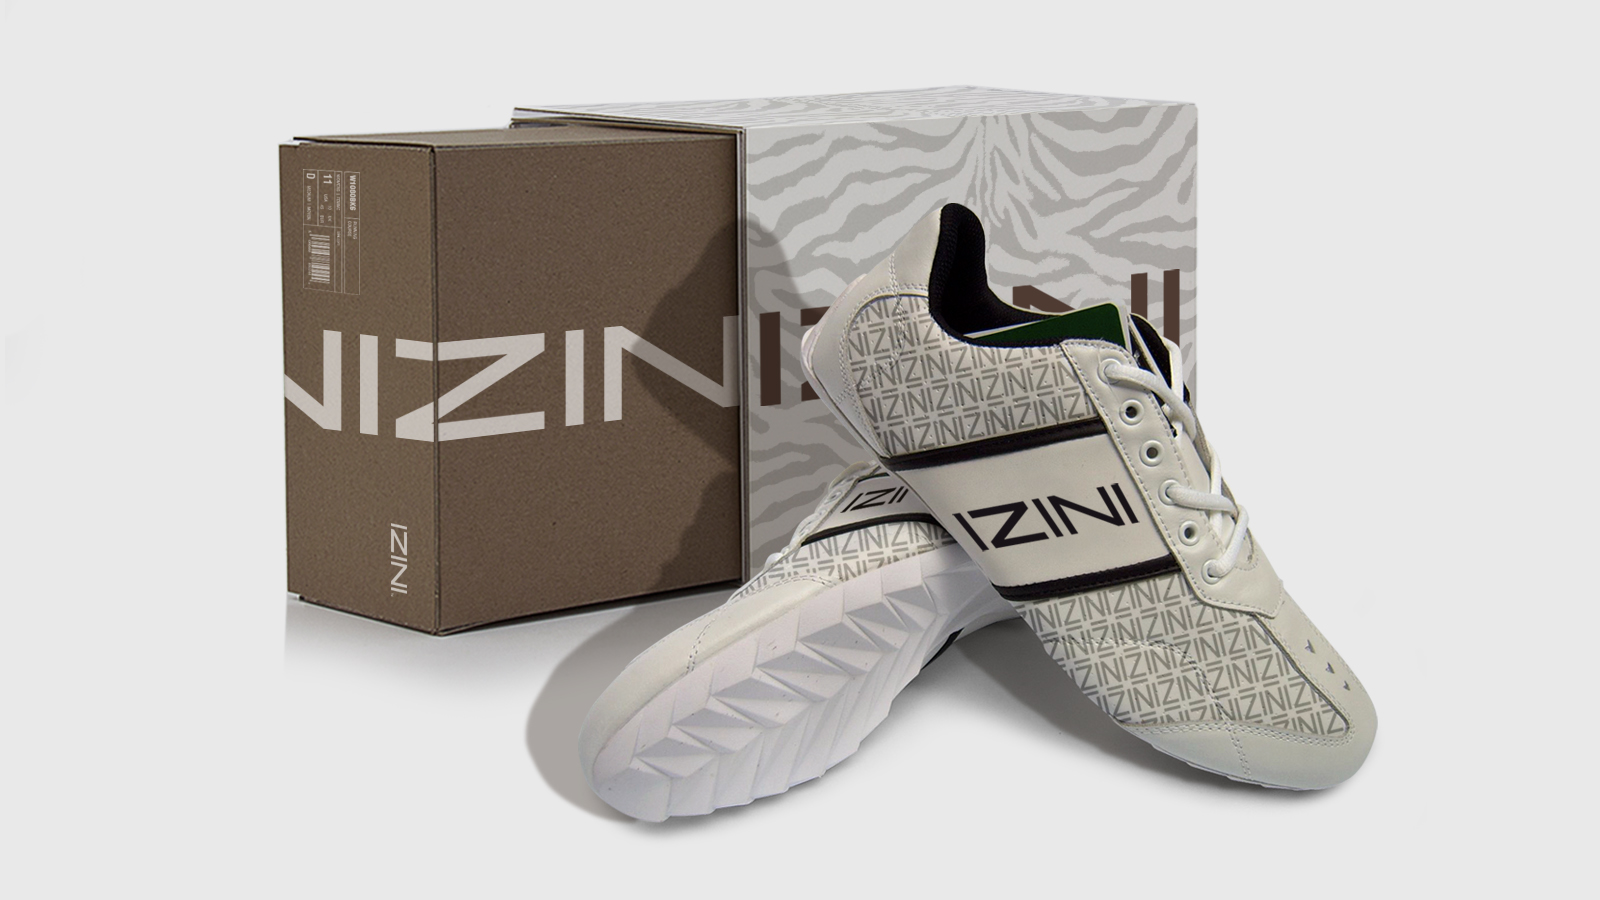 IZINI shoe box.jpg